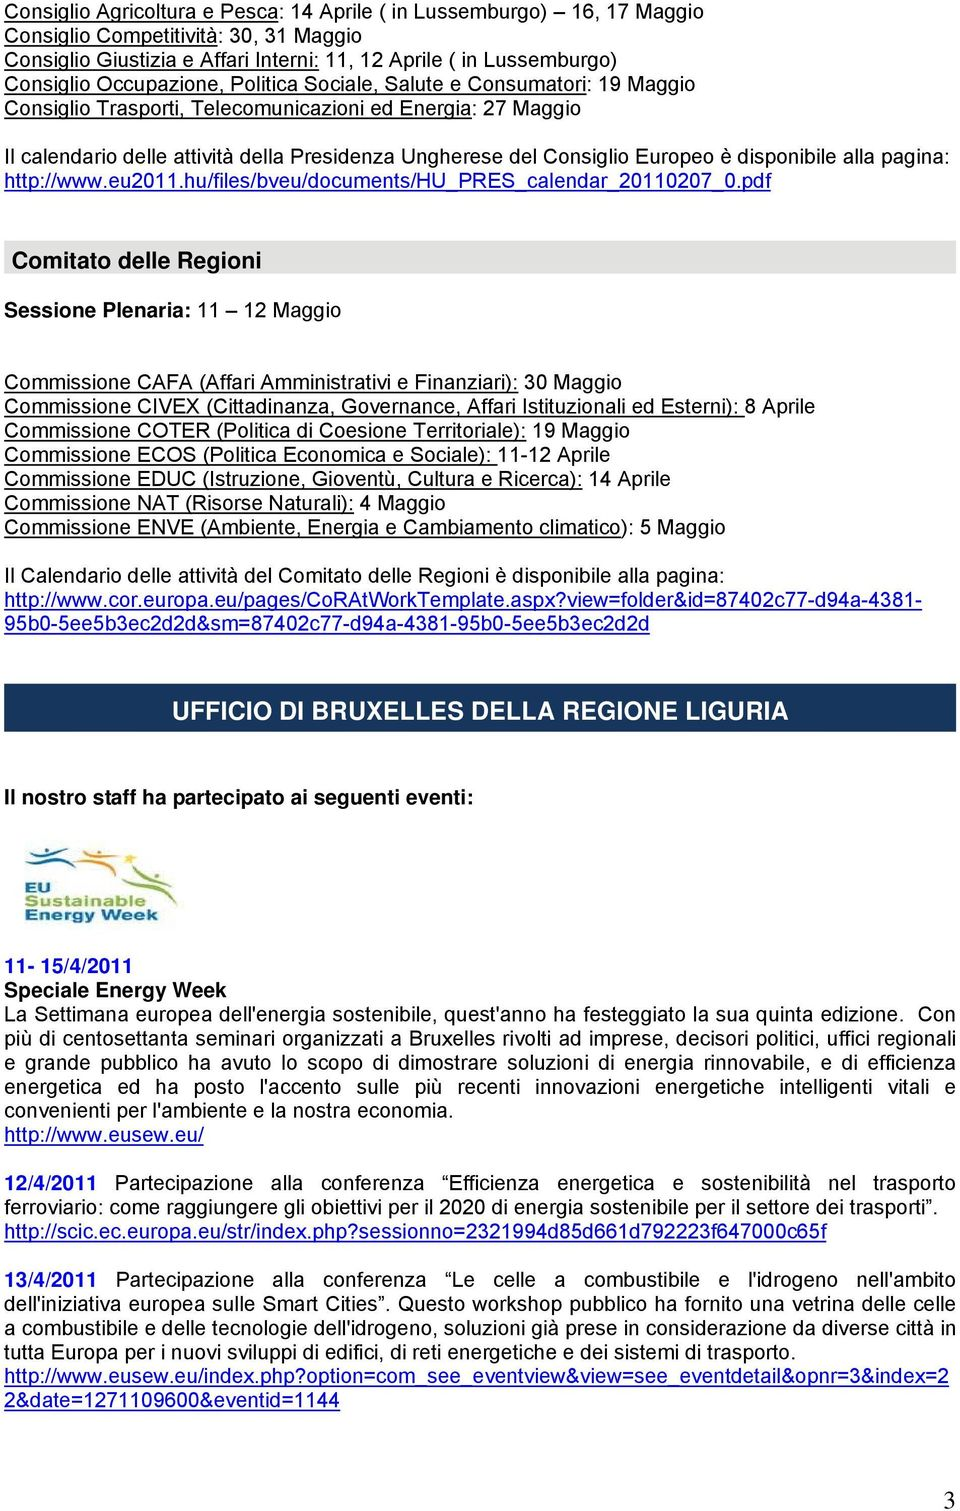 Europeo è disponibile alla pagina: http://www.eu2011.hu/files/bveu/documents/hu_pres_calendar_20110207_0.